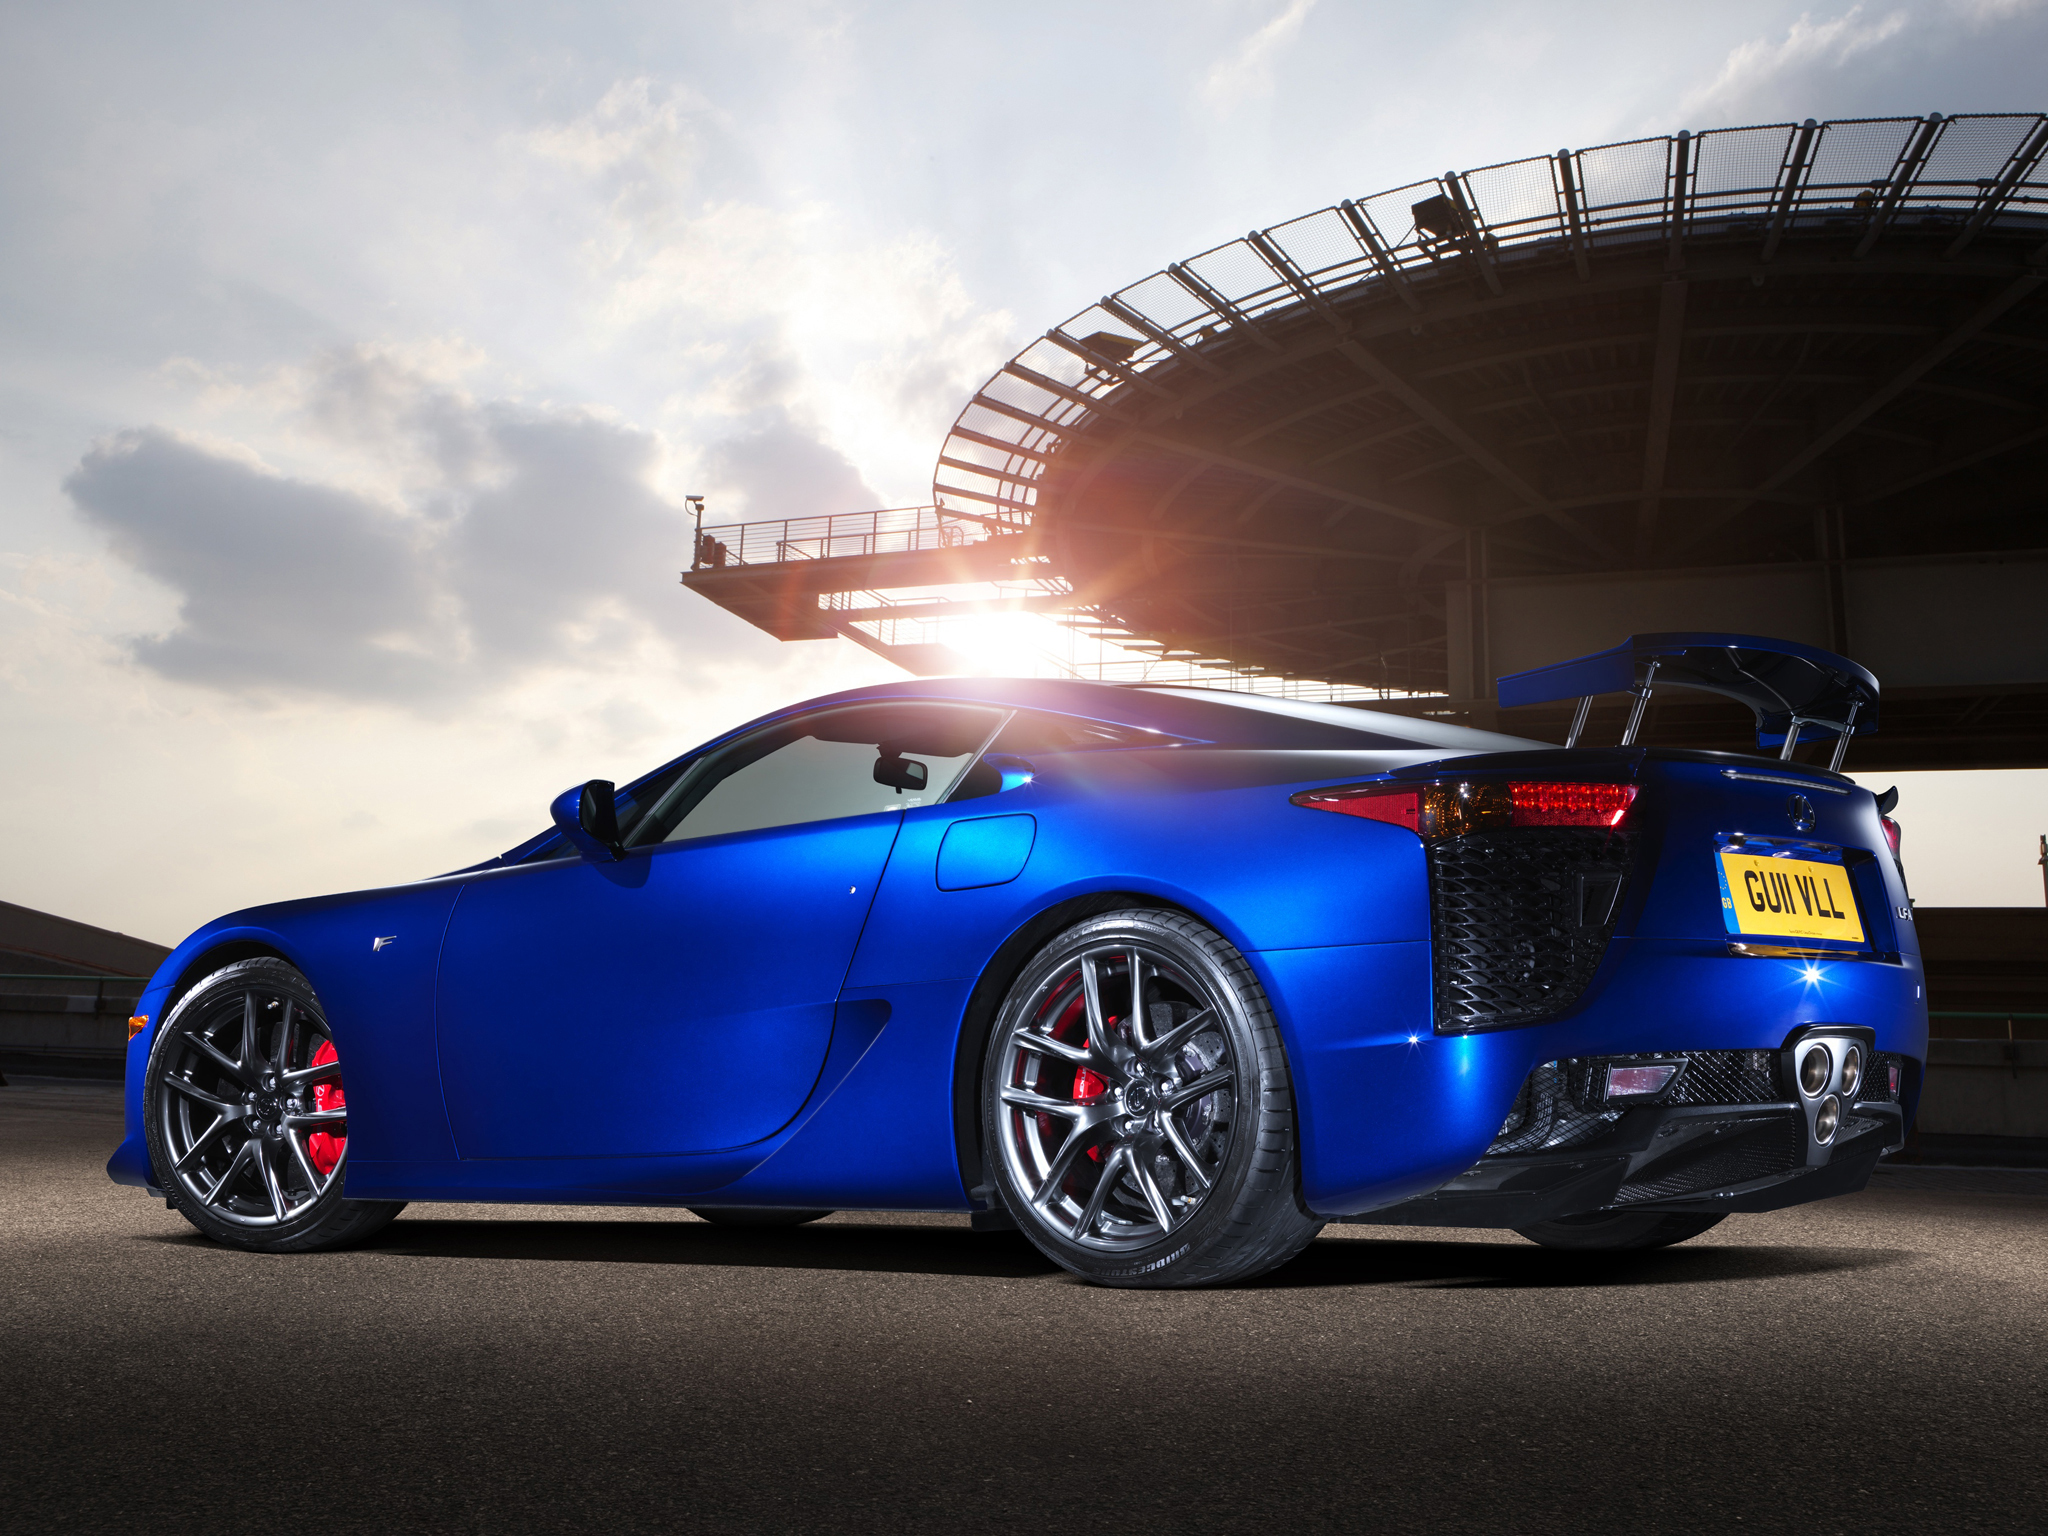 Lexus lfa wallpapers pictures images for Wallpaper sale uk